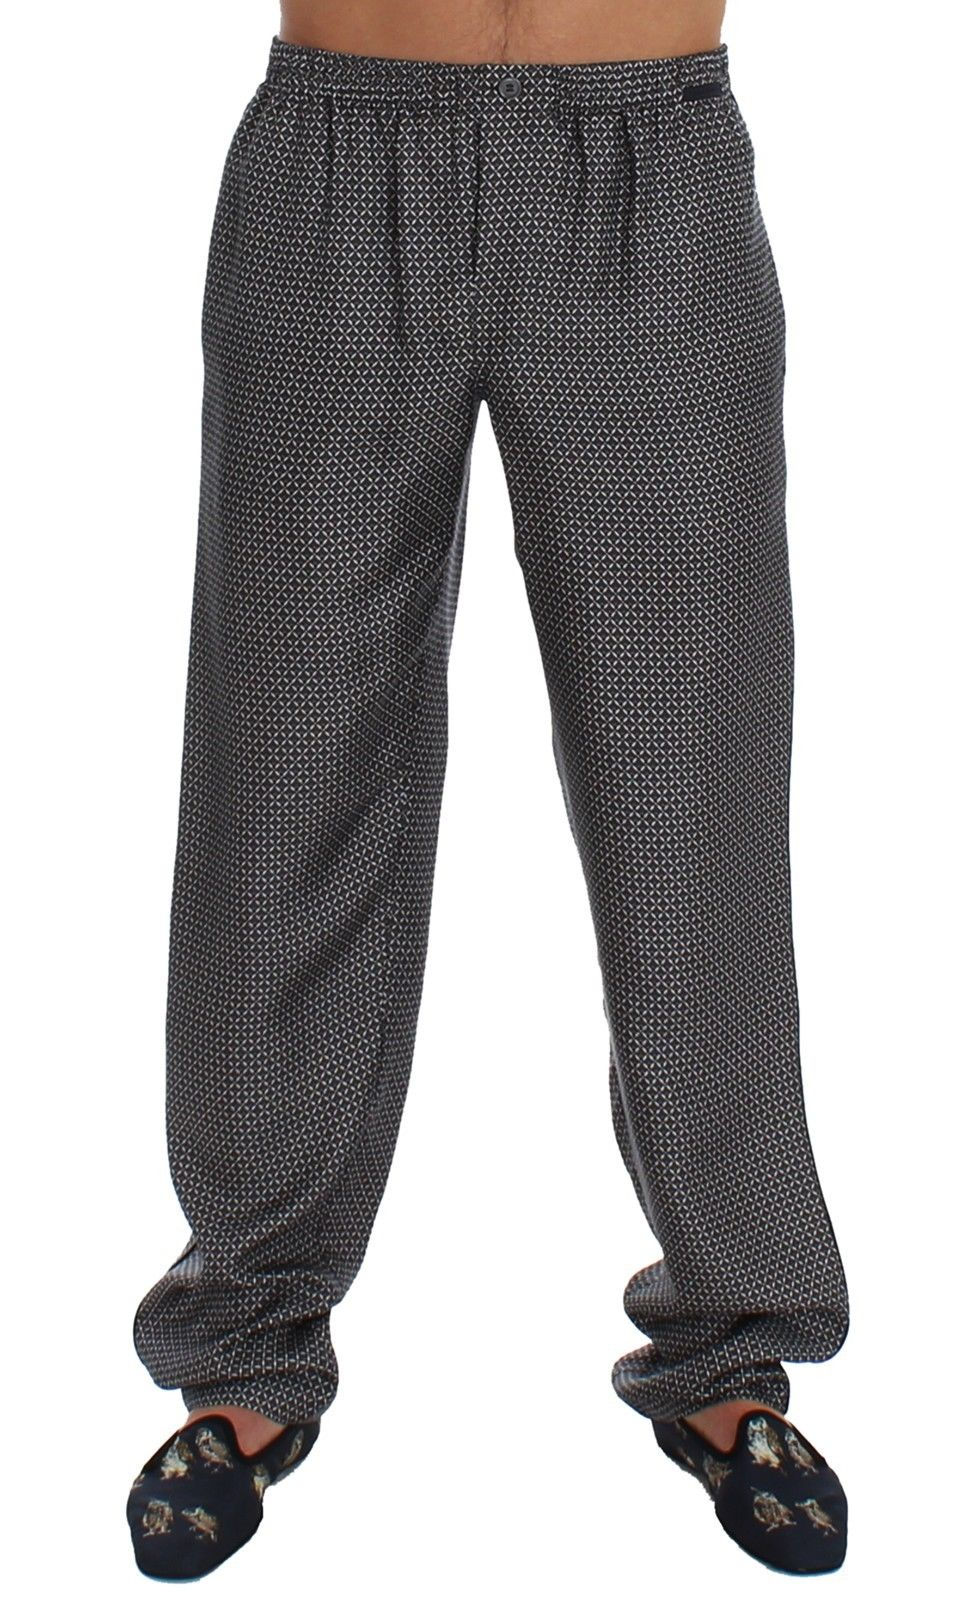 Dolce & Gabbana - Gray SILK Pajama Lounge Pants Trousers Sleepwear